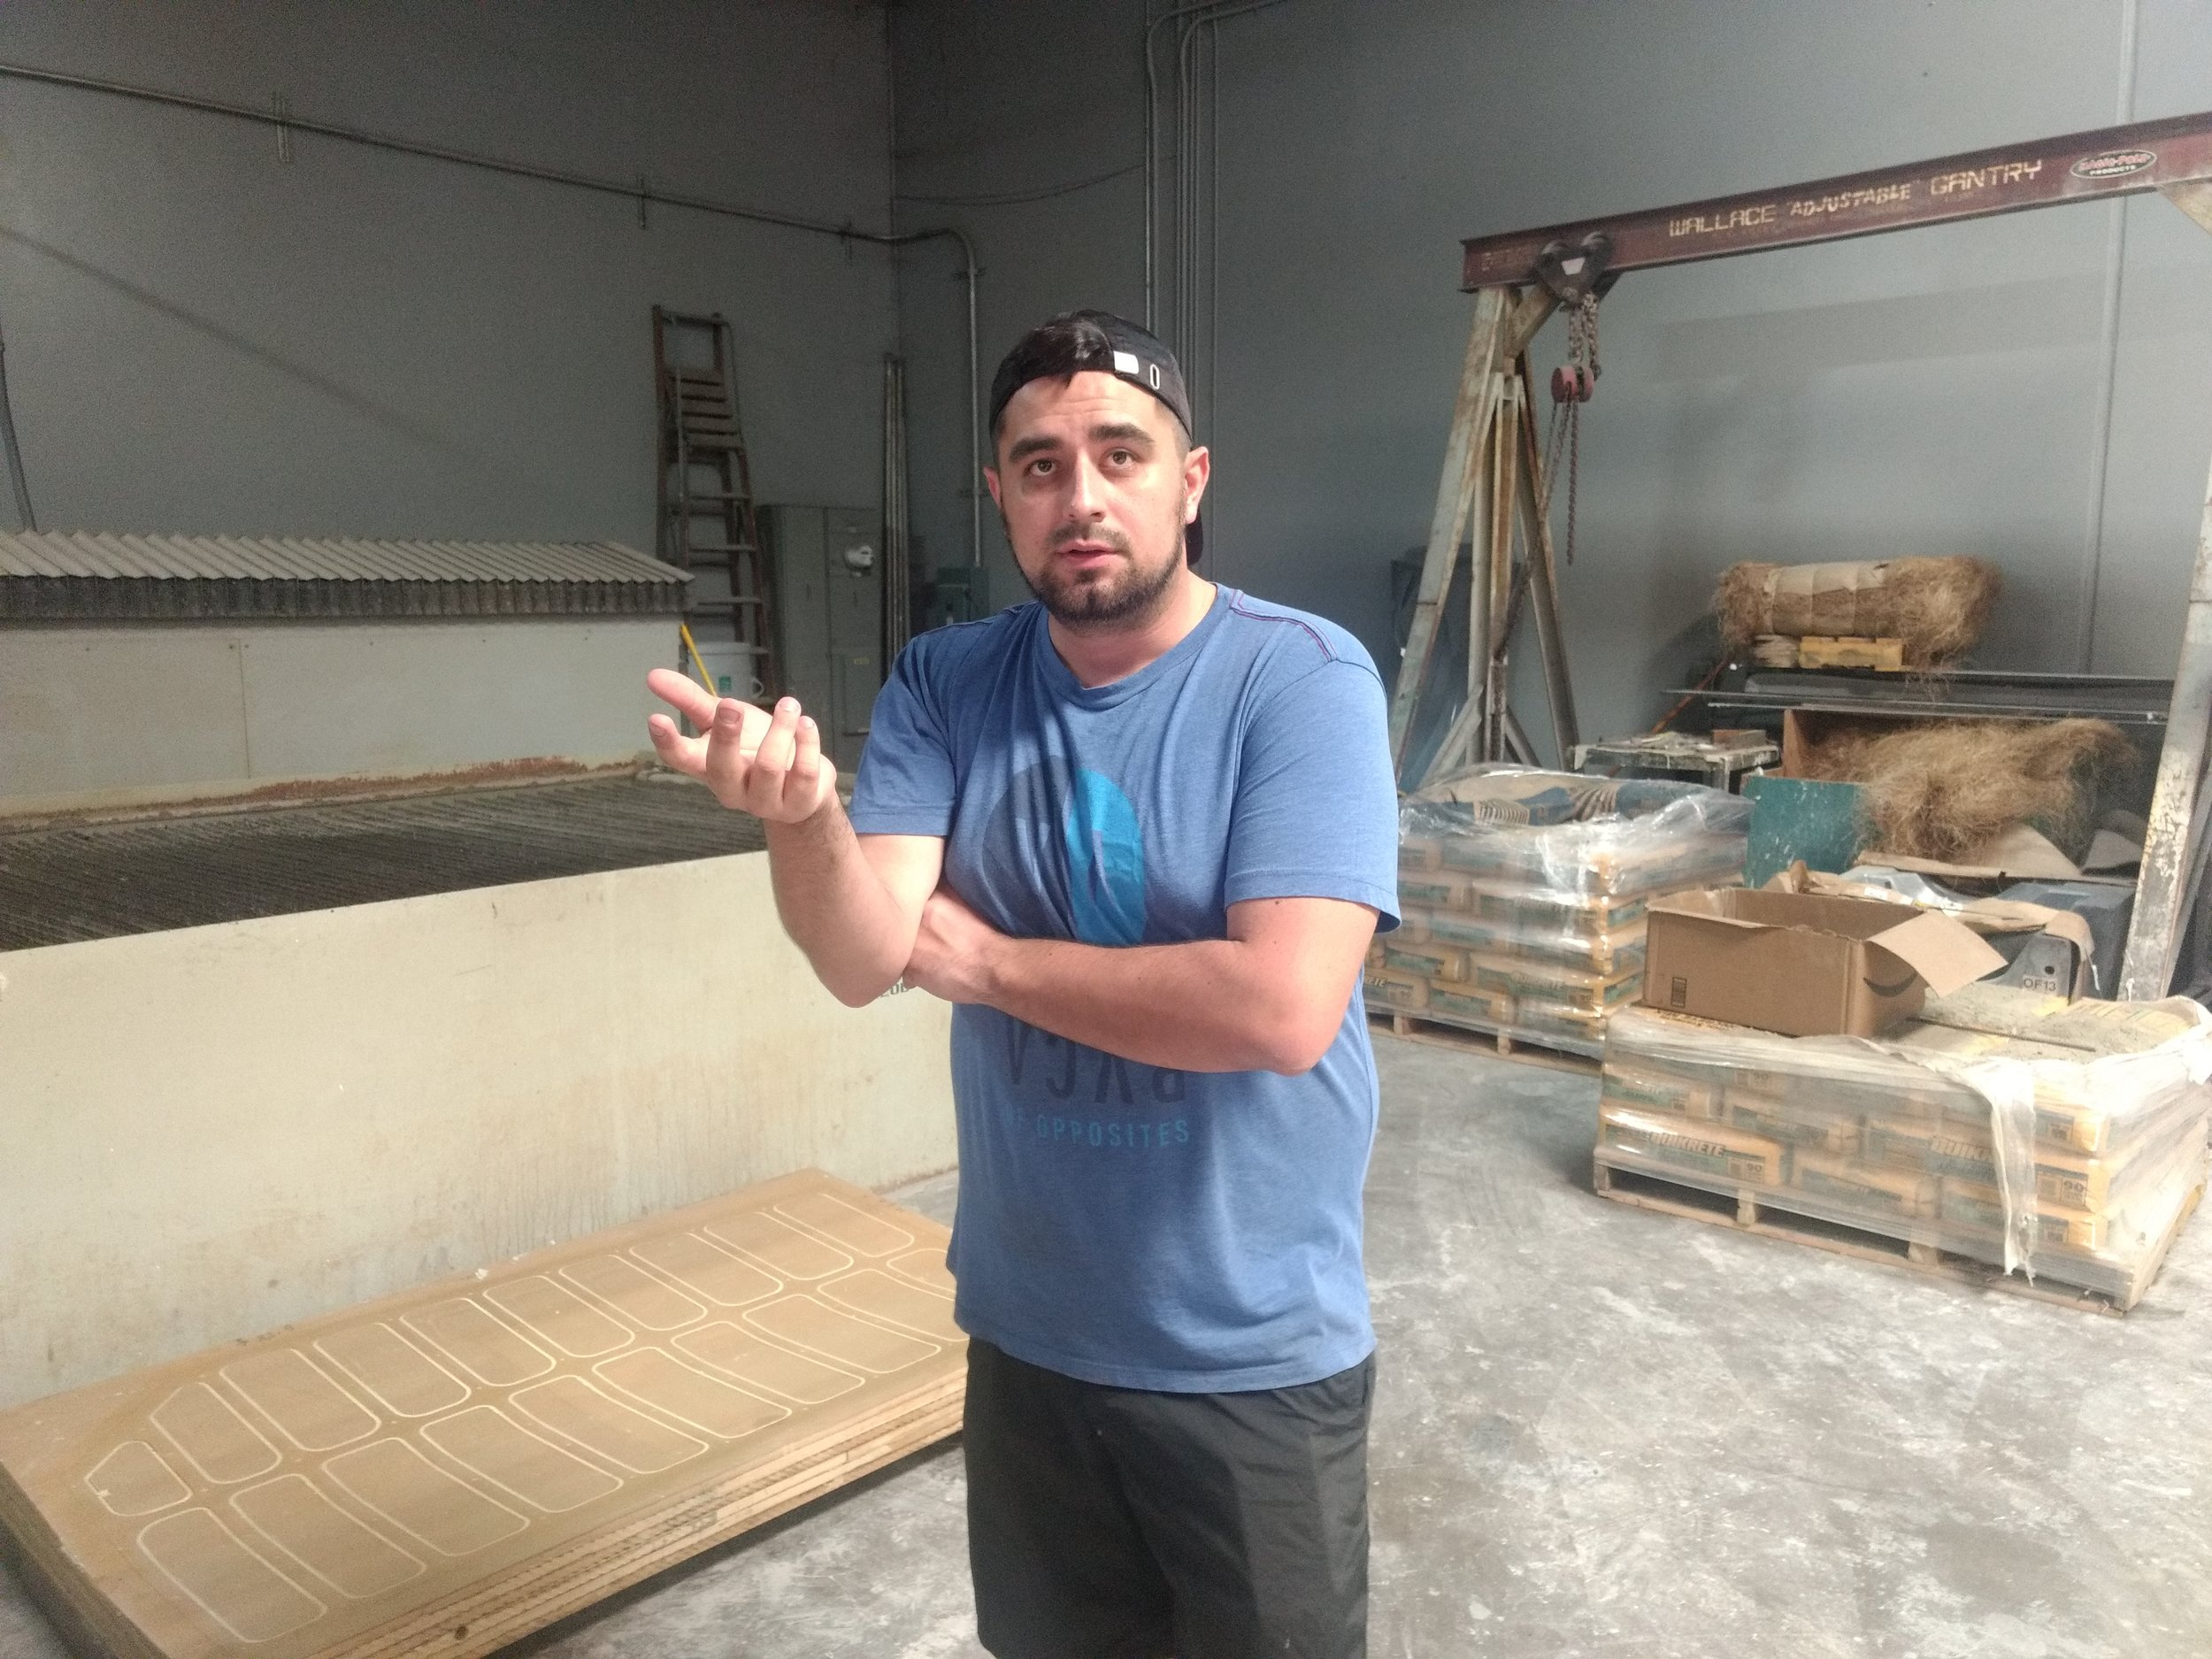 Ryan Molina speaking about the use of the waterjet.